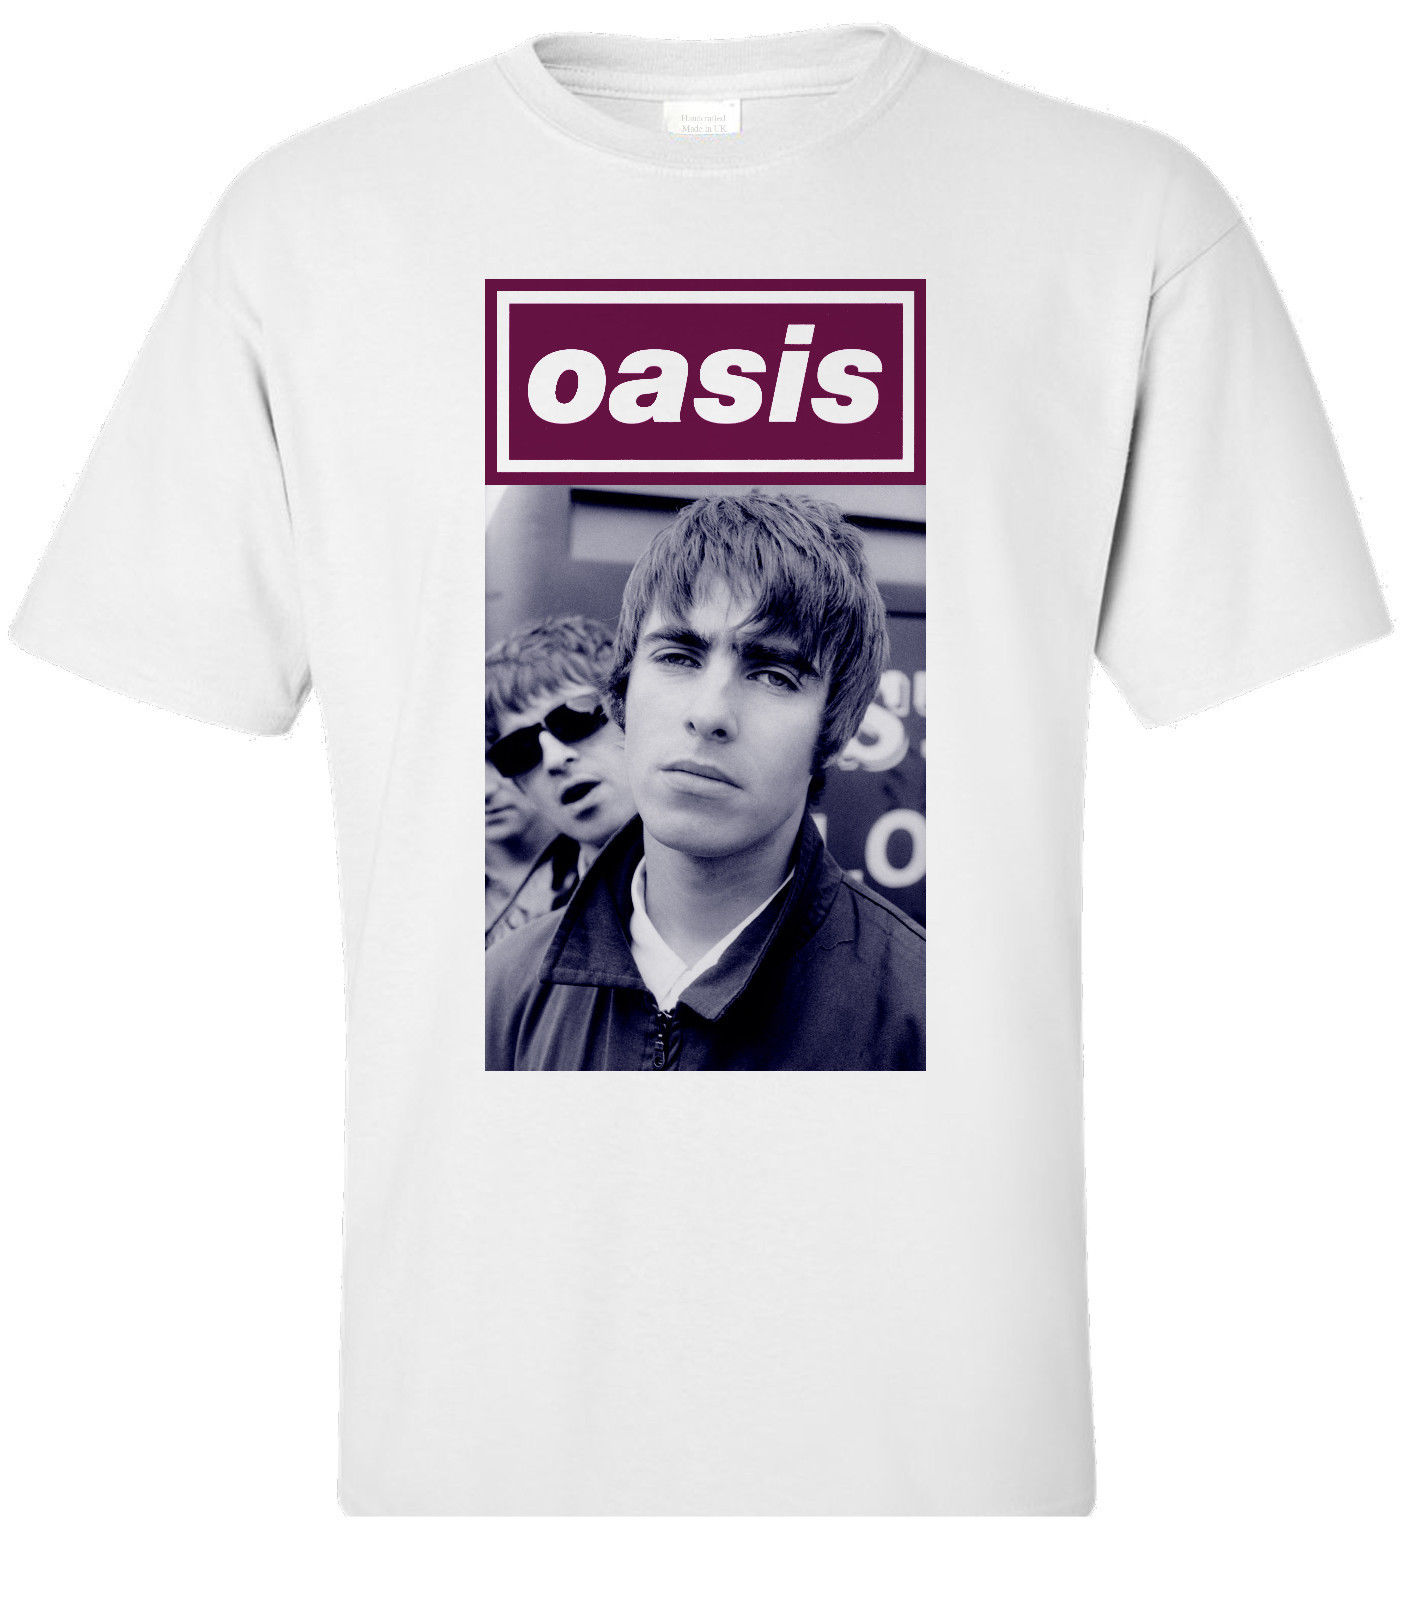 OASIS Band TShirt Gallaghers NEW Tshirt [all Sizes] Buzz Era. Britpop Men Tee Shirt Tops Short Sleeve Cotton Fitness T-Shirts